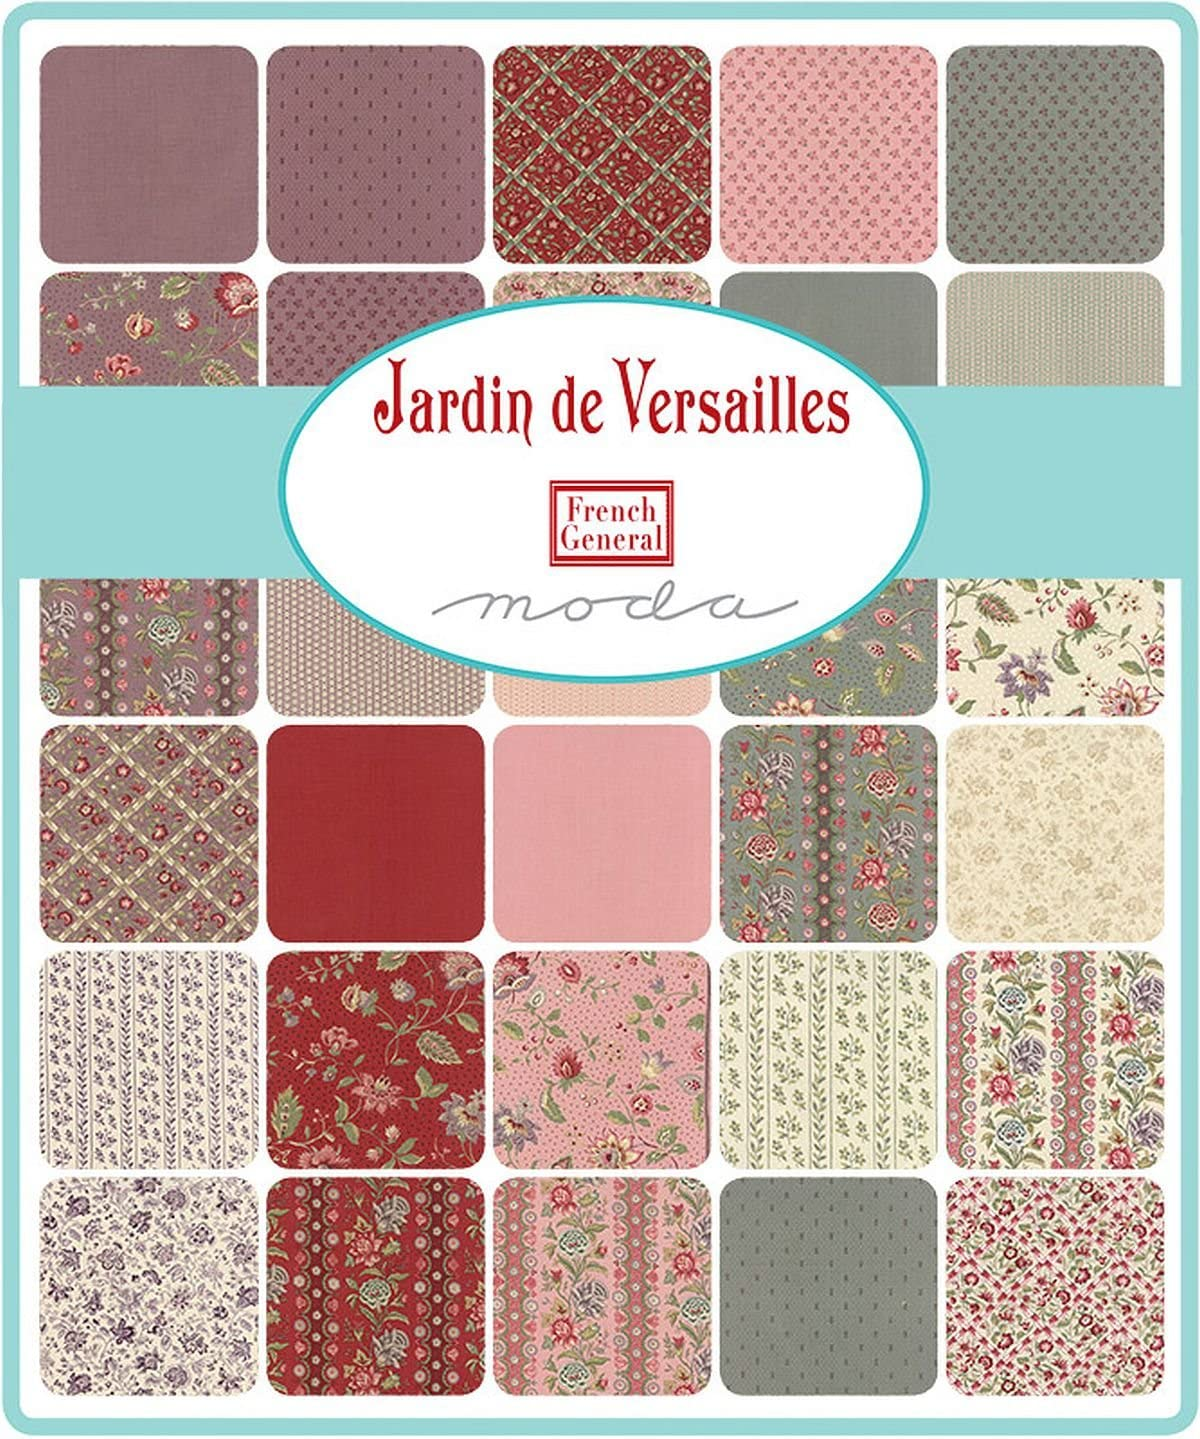 Jardin de Versailles Mini Charm Pack By French General; 110cm - 6.4cm Precut Fabric Quilt Squares: Amazon.es: Juguetes y juegos